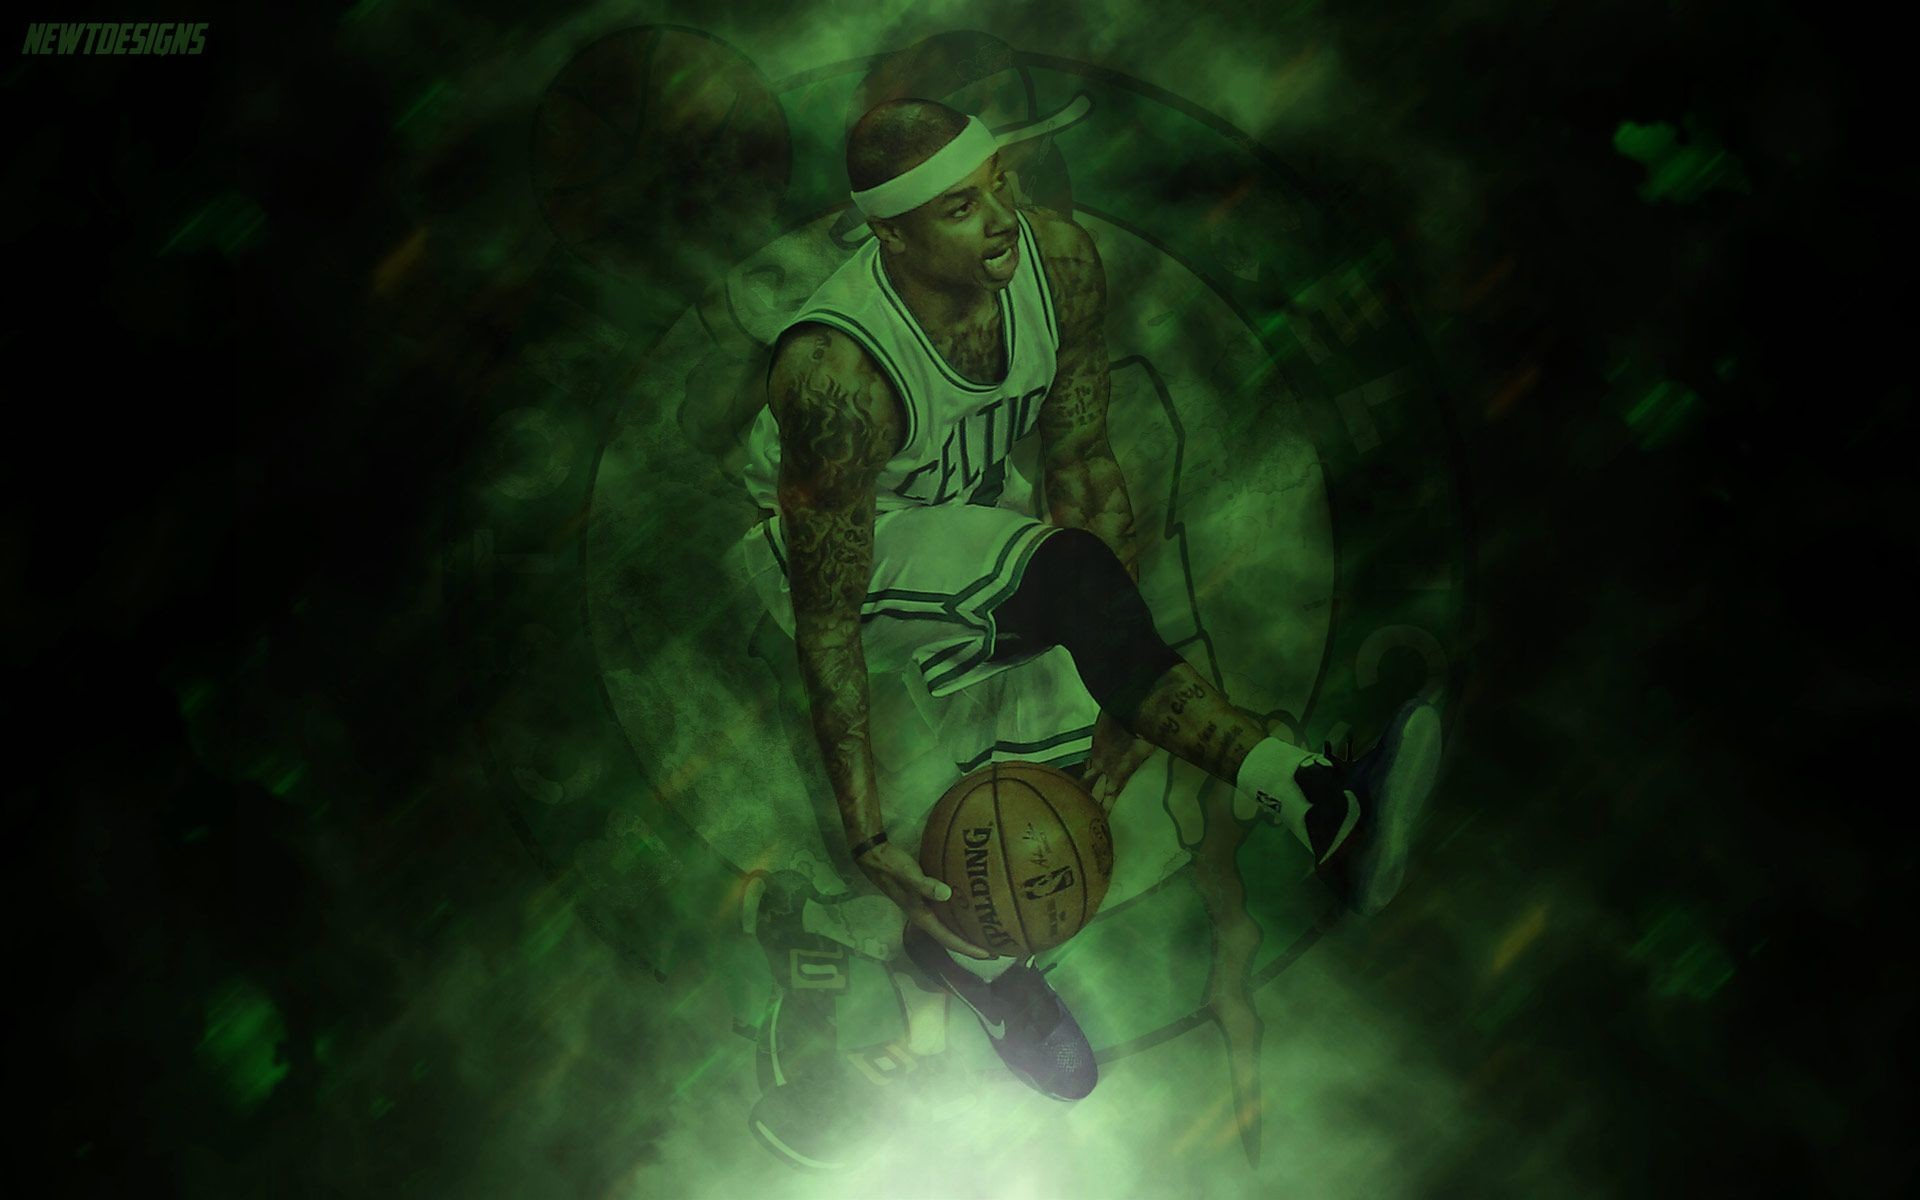 Res: 1920x1200, Isaiah Thomas Dunk In Game Celtics - Best Wallpaper HD